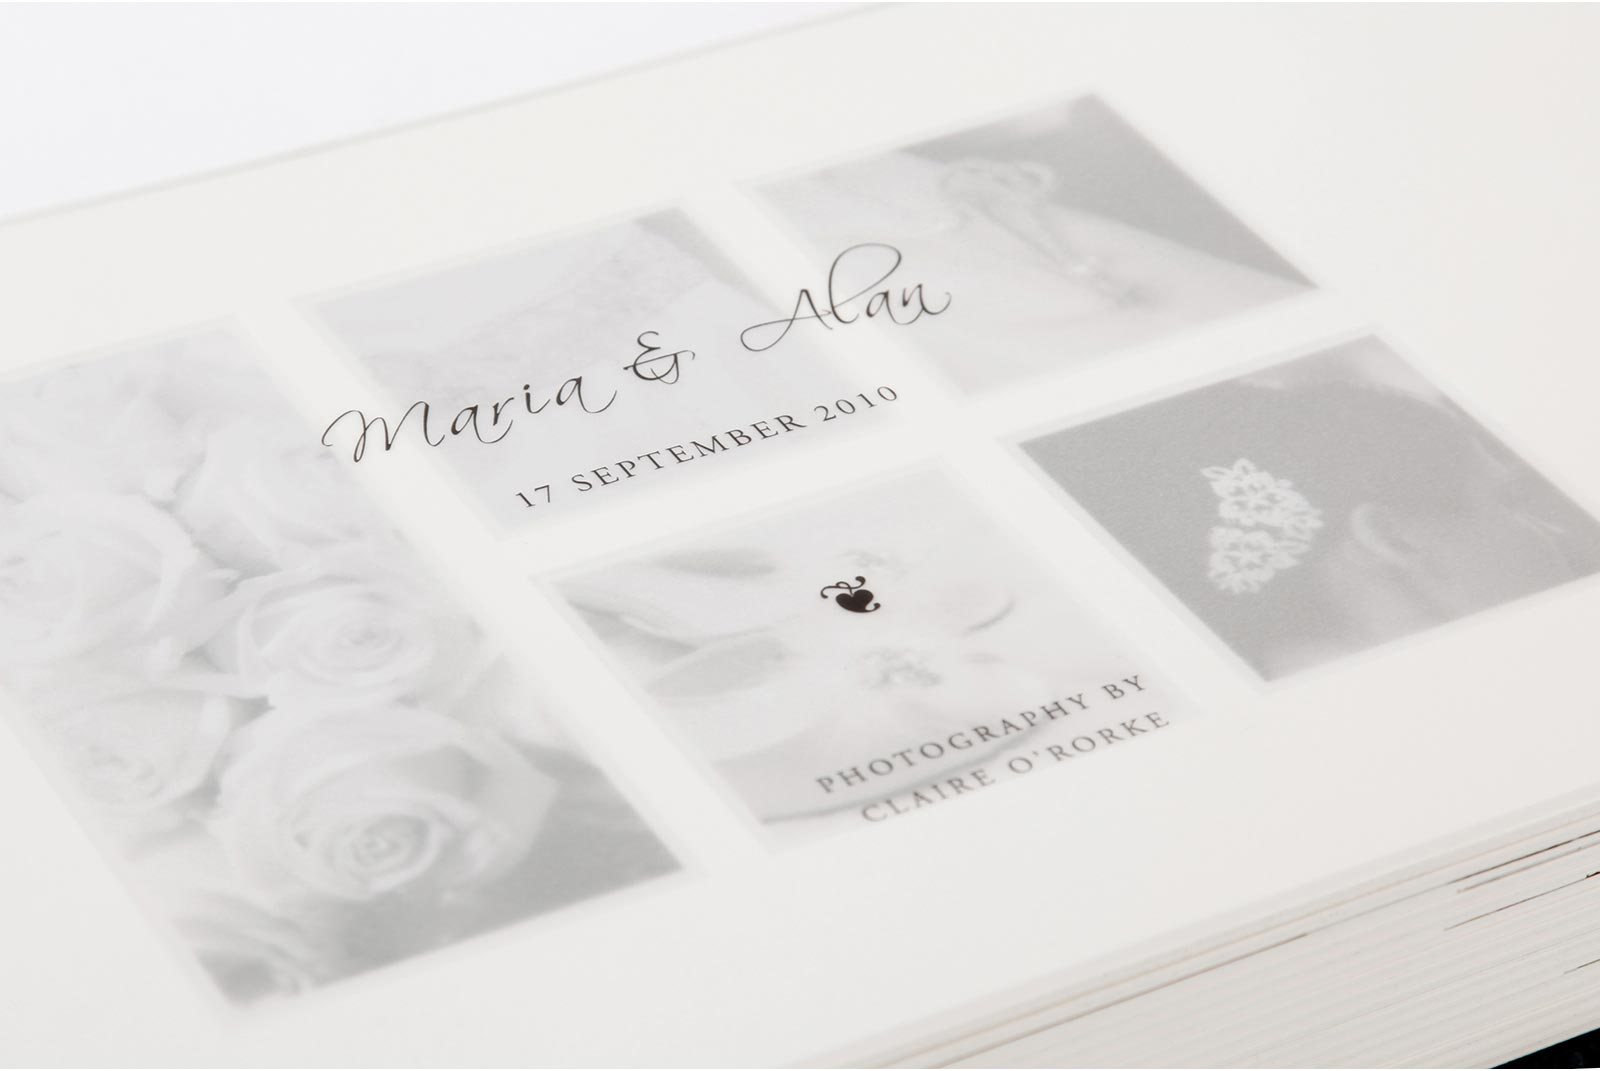 Translucent title page in Queensberry wedding album